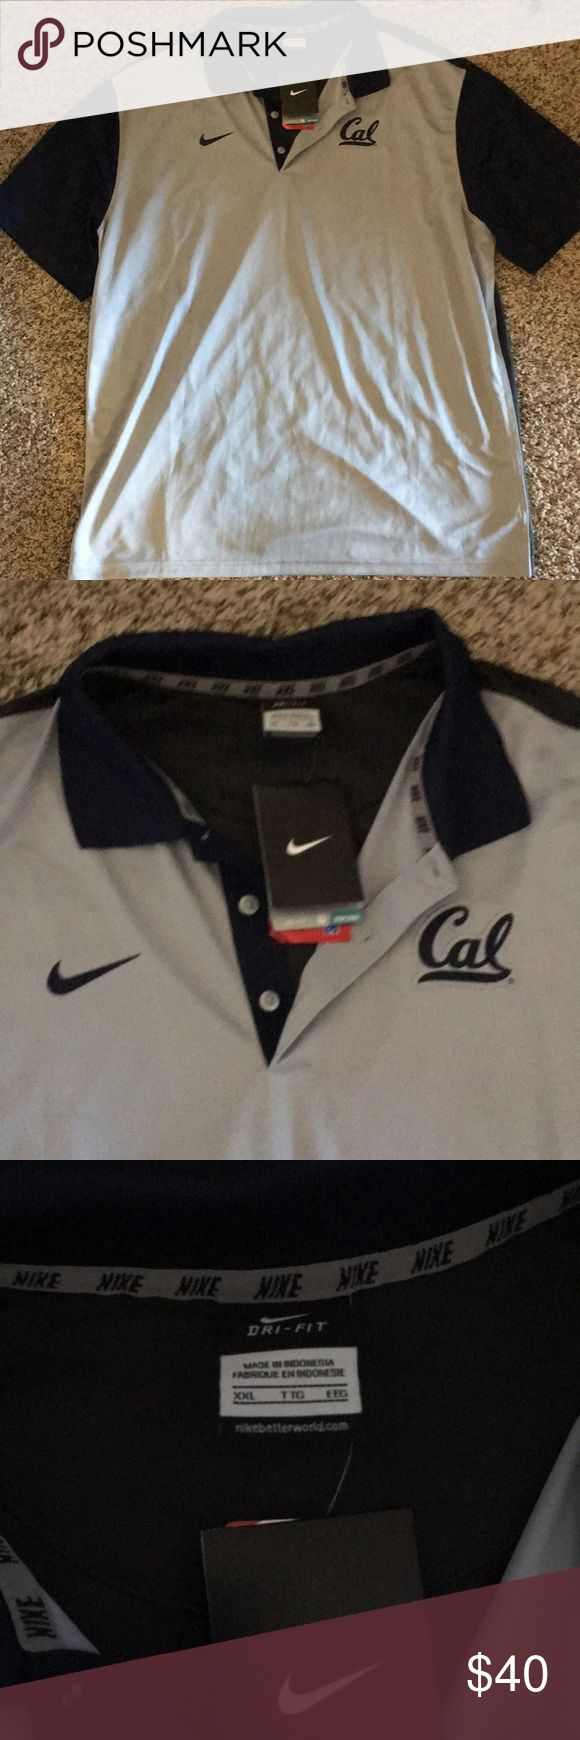 Men's Cal polo I am selling a men's Cal university polo shirt. New with tags on it. Light blue shirt with dark blue sleeves. Size XXL Nike Shirts Polos